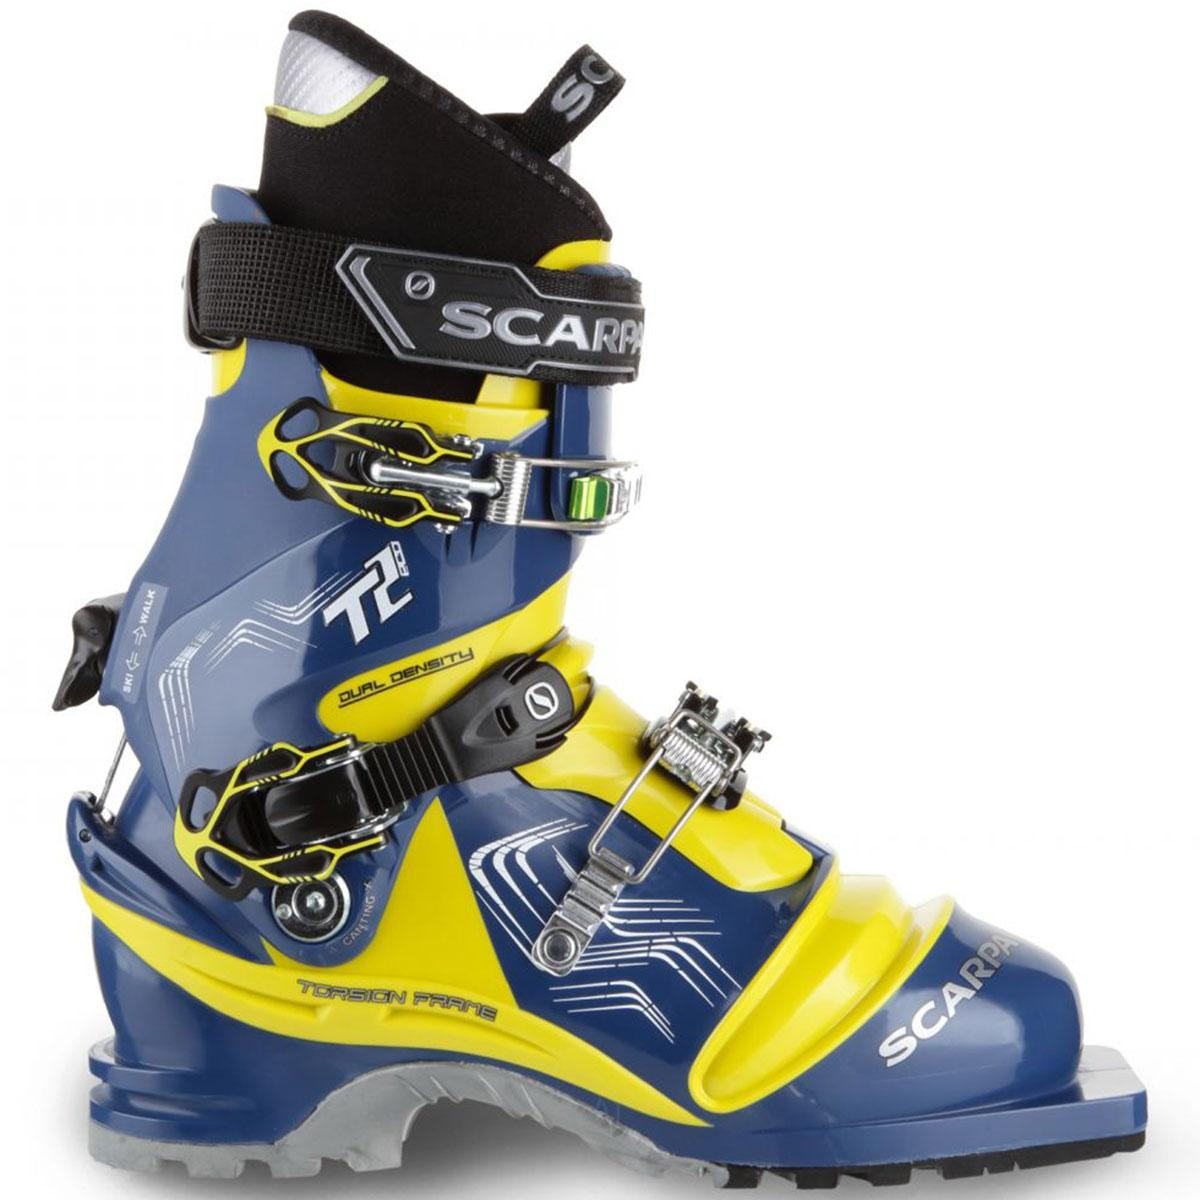 Scarpa T2 Eco men's Telemark ski boot in true blue and acid